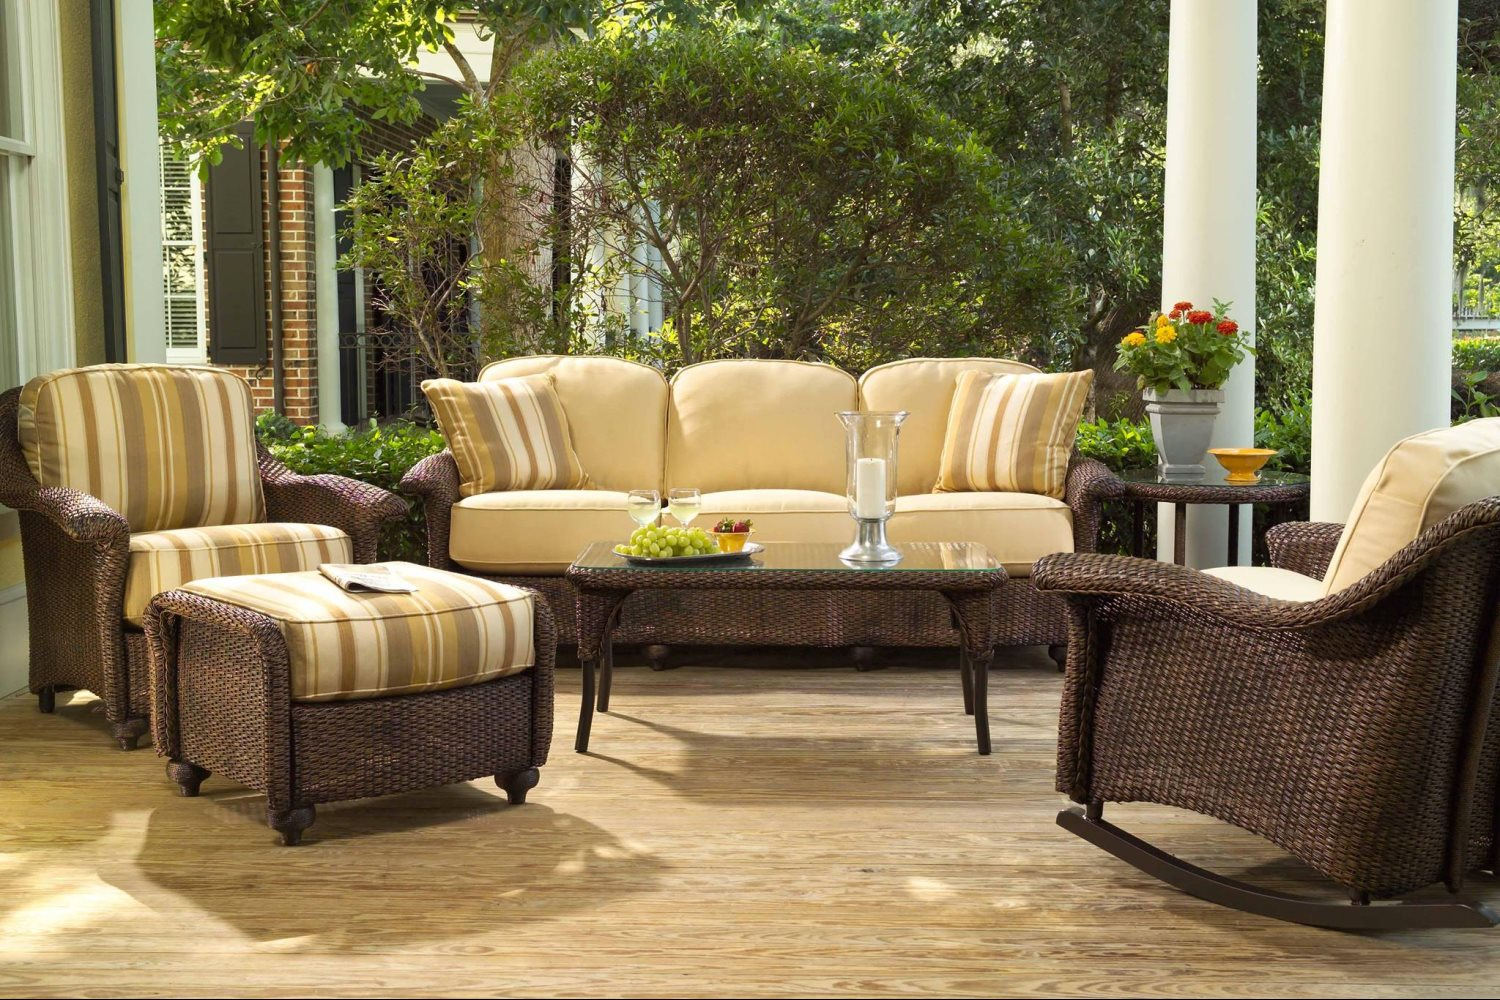 Patio furniture outdoor seating dining patio for Porch furniture